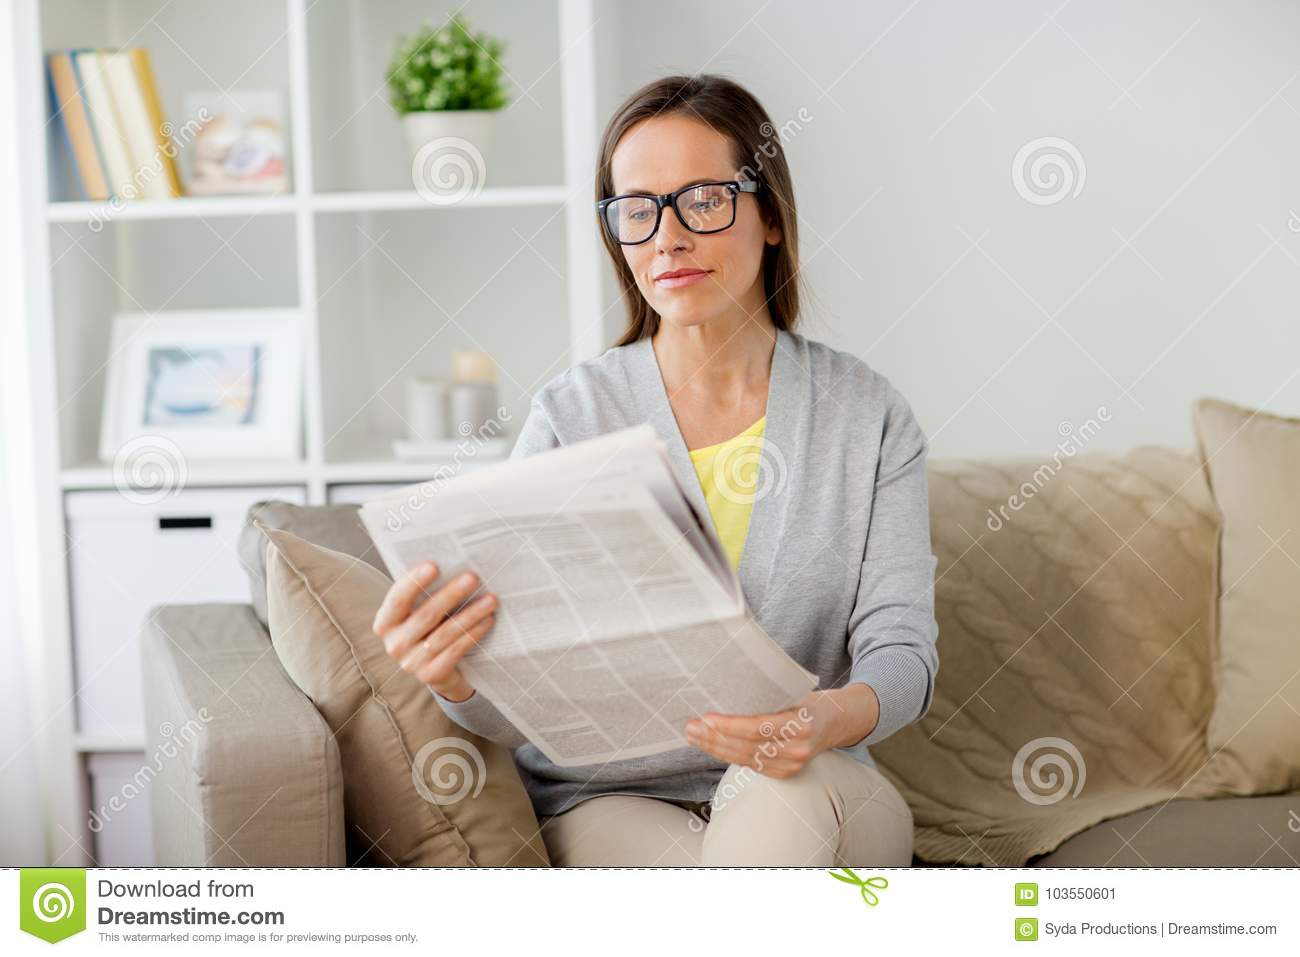 woman in glasses reading newspaper at home stock image - image of